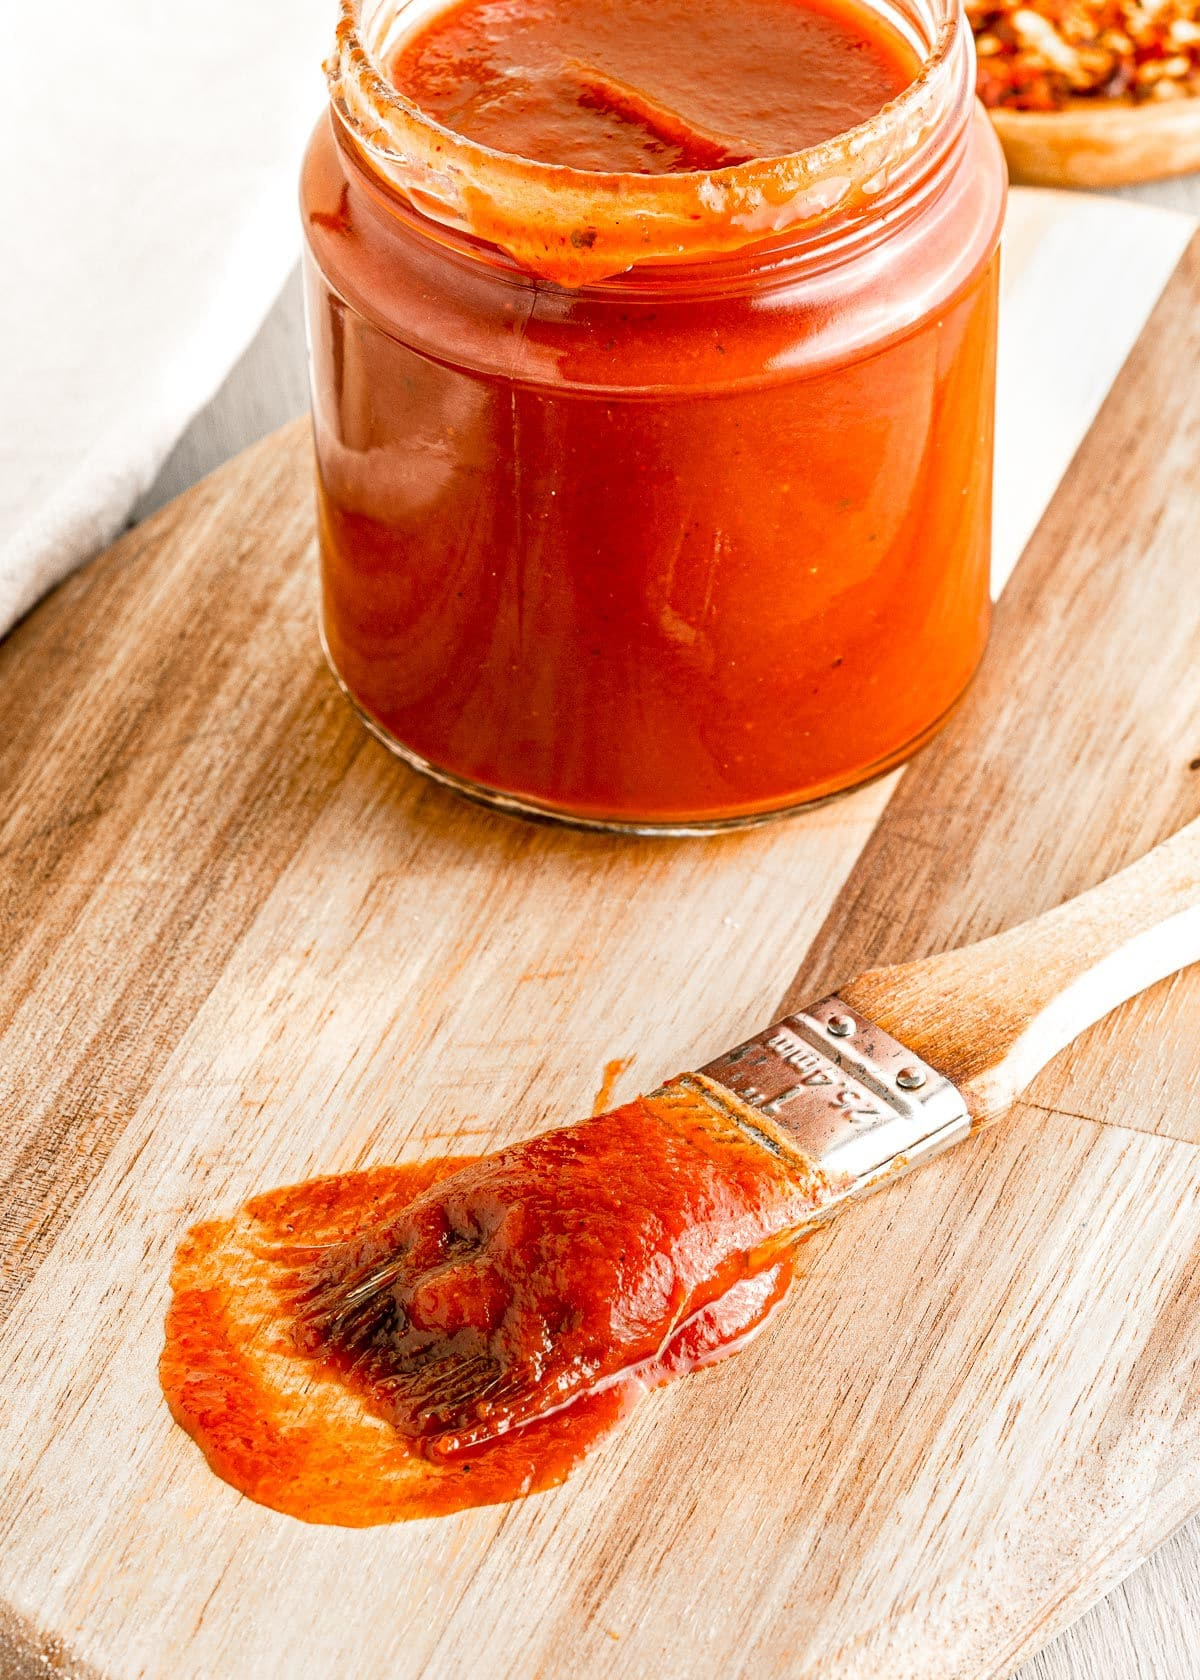 brush with bbq sauce on it sitting on cutting board next to a jar of bbq sauce.